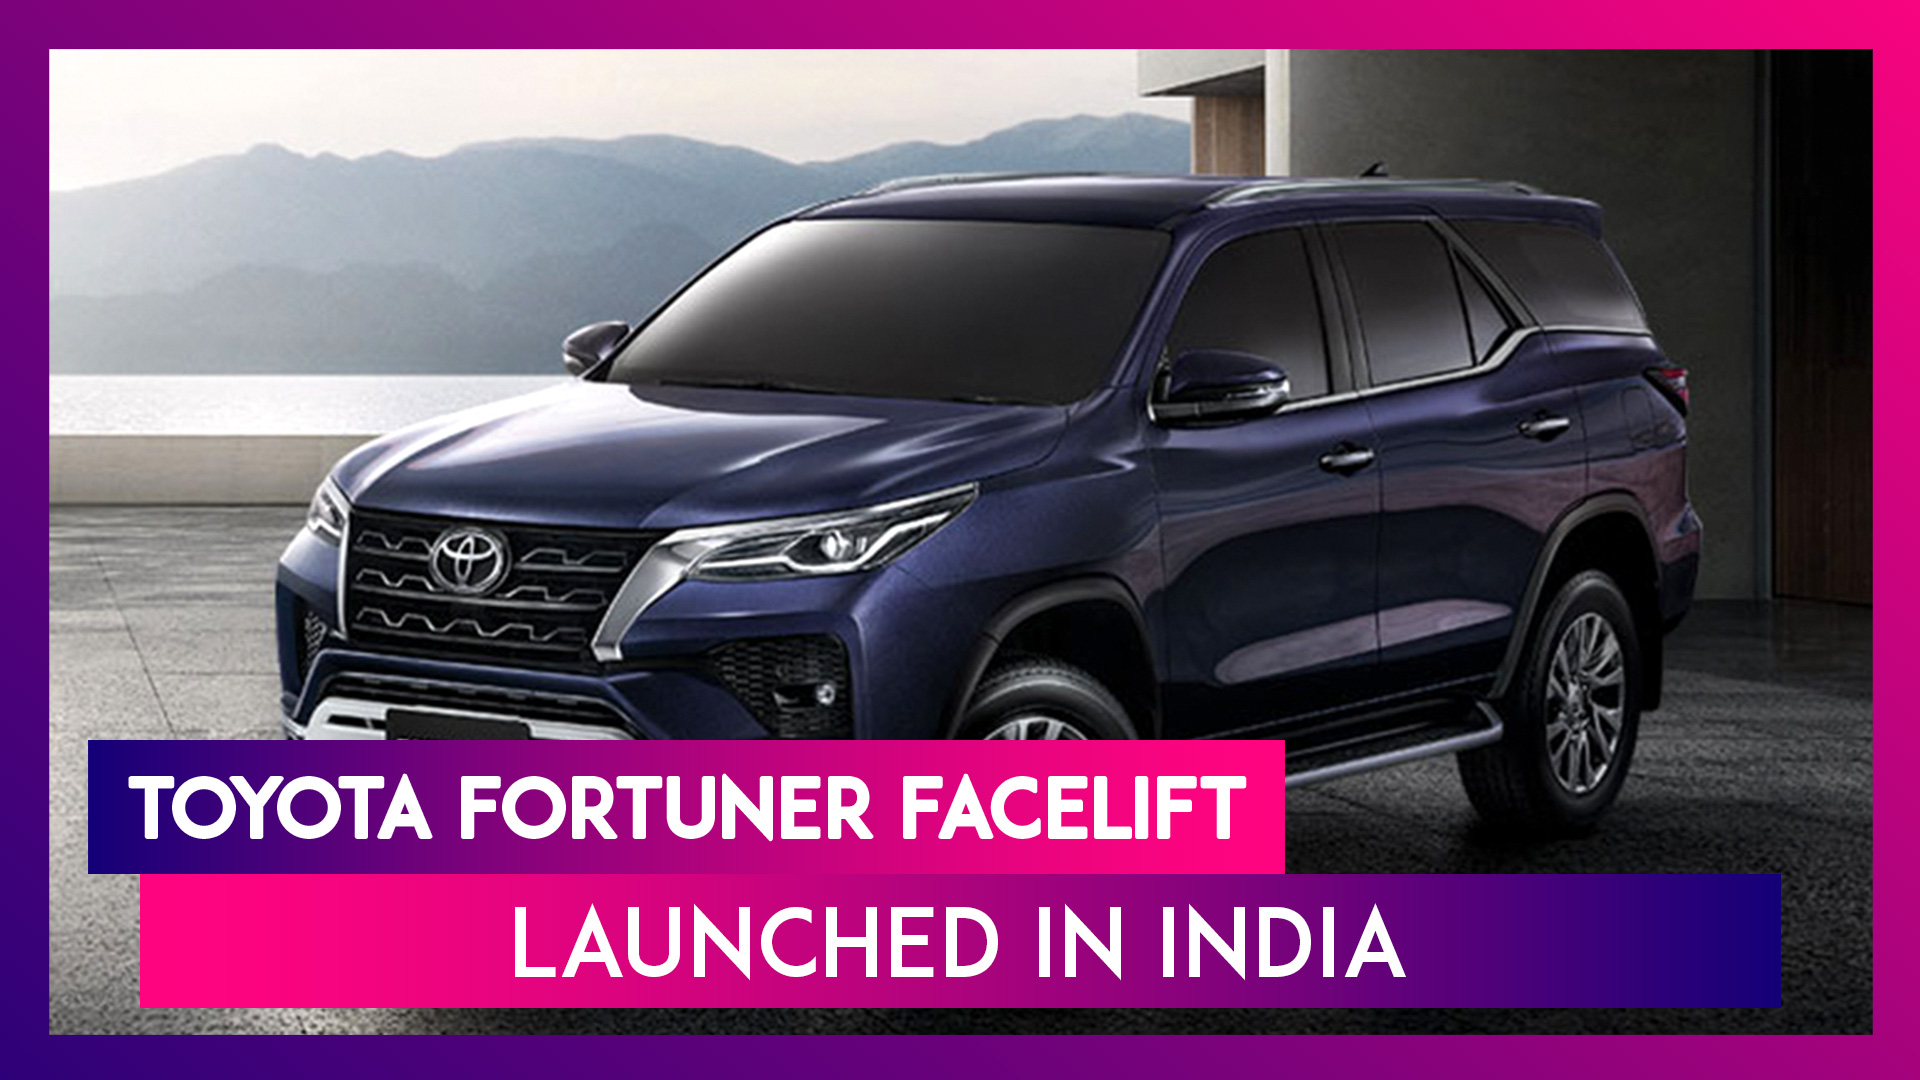 Toyota Fortuner Facelift Launched in India; Check Prices, Features, Variants & Specifications